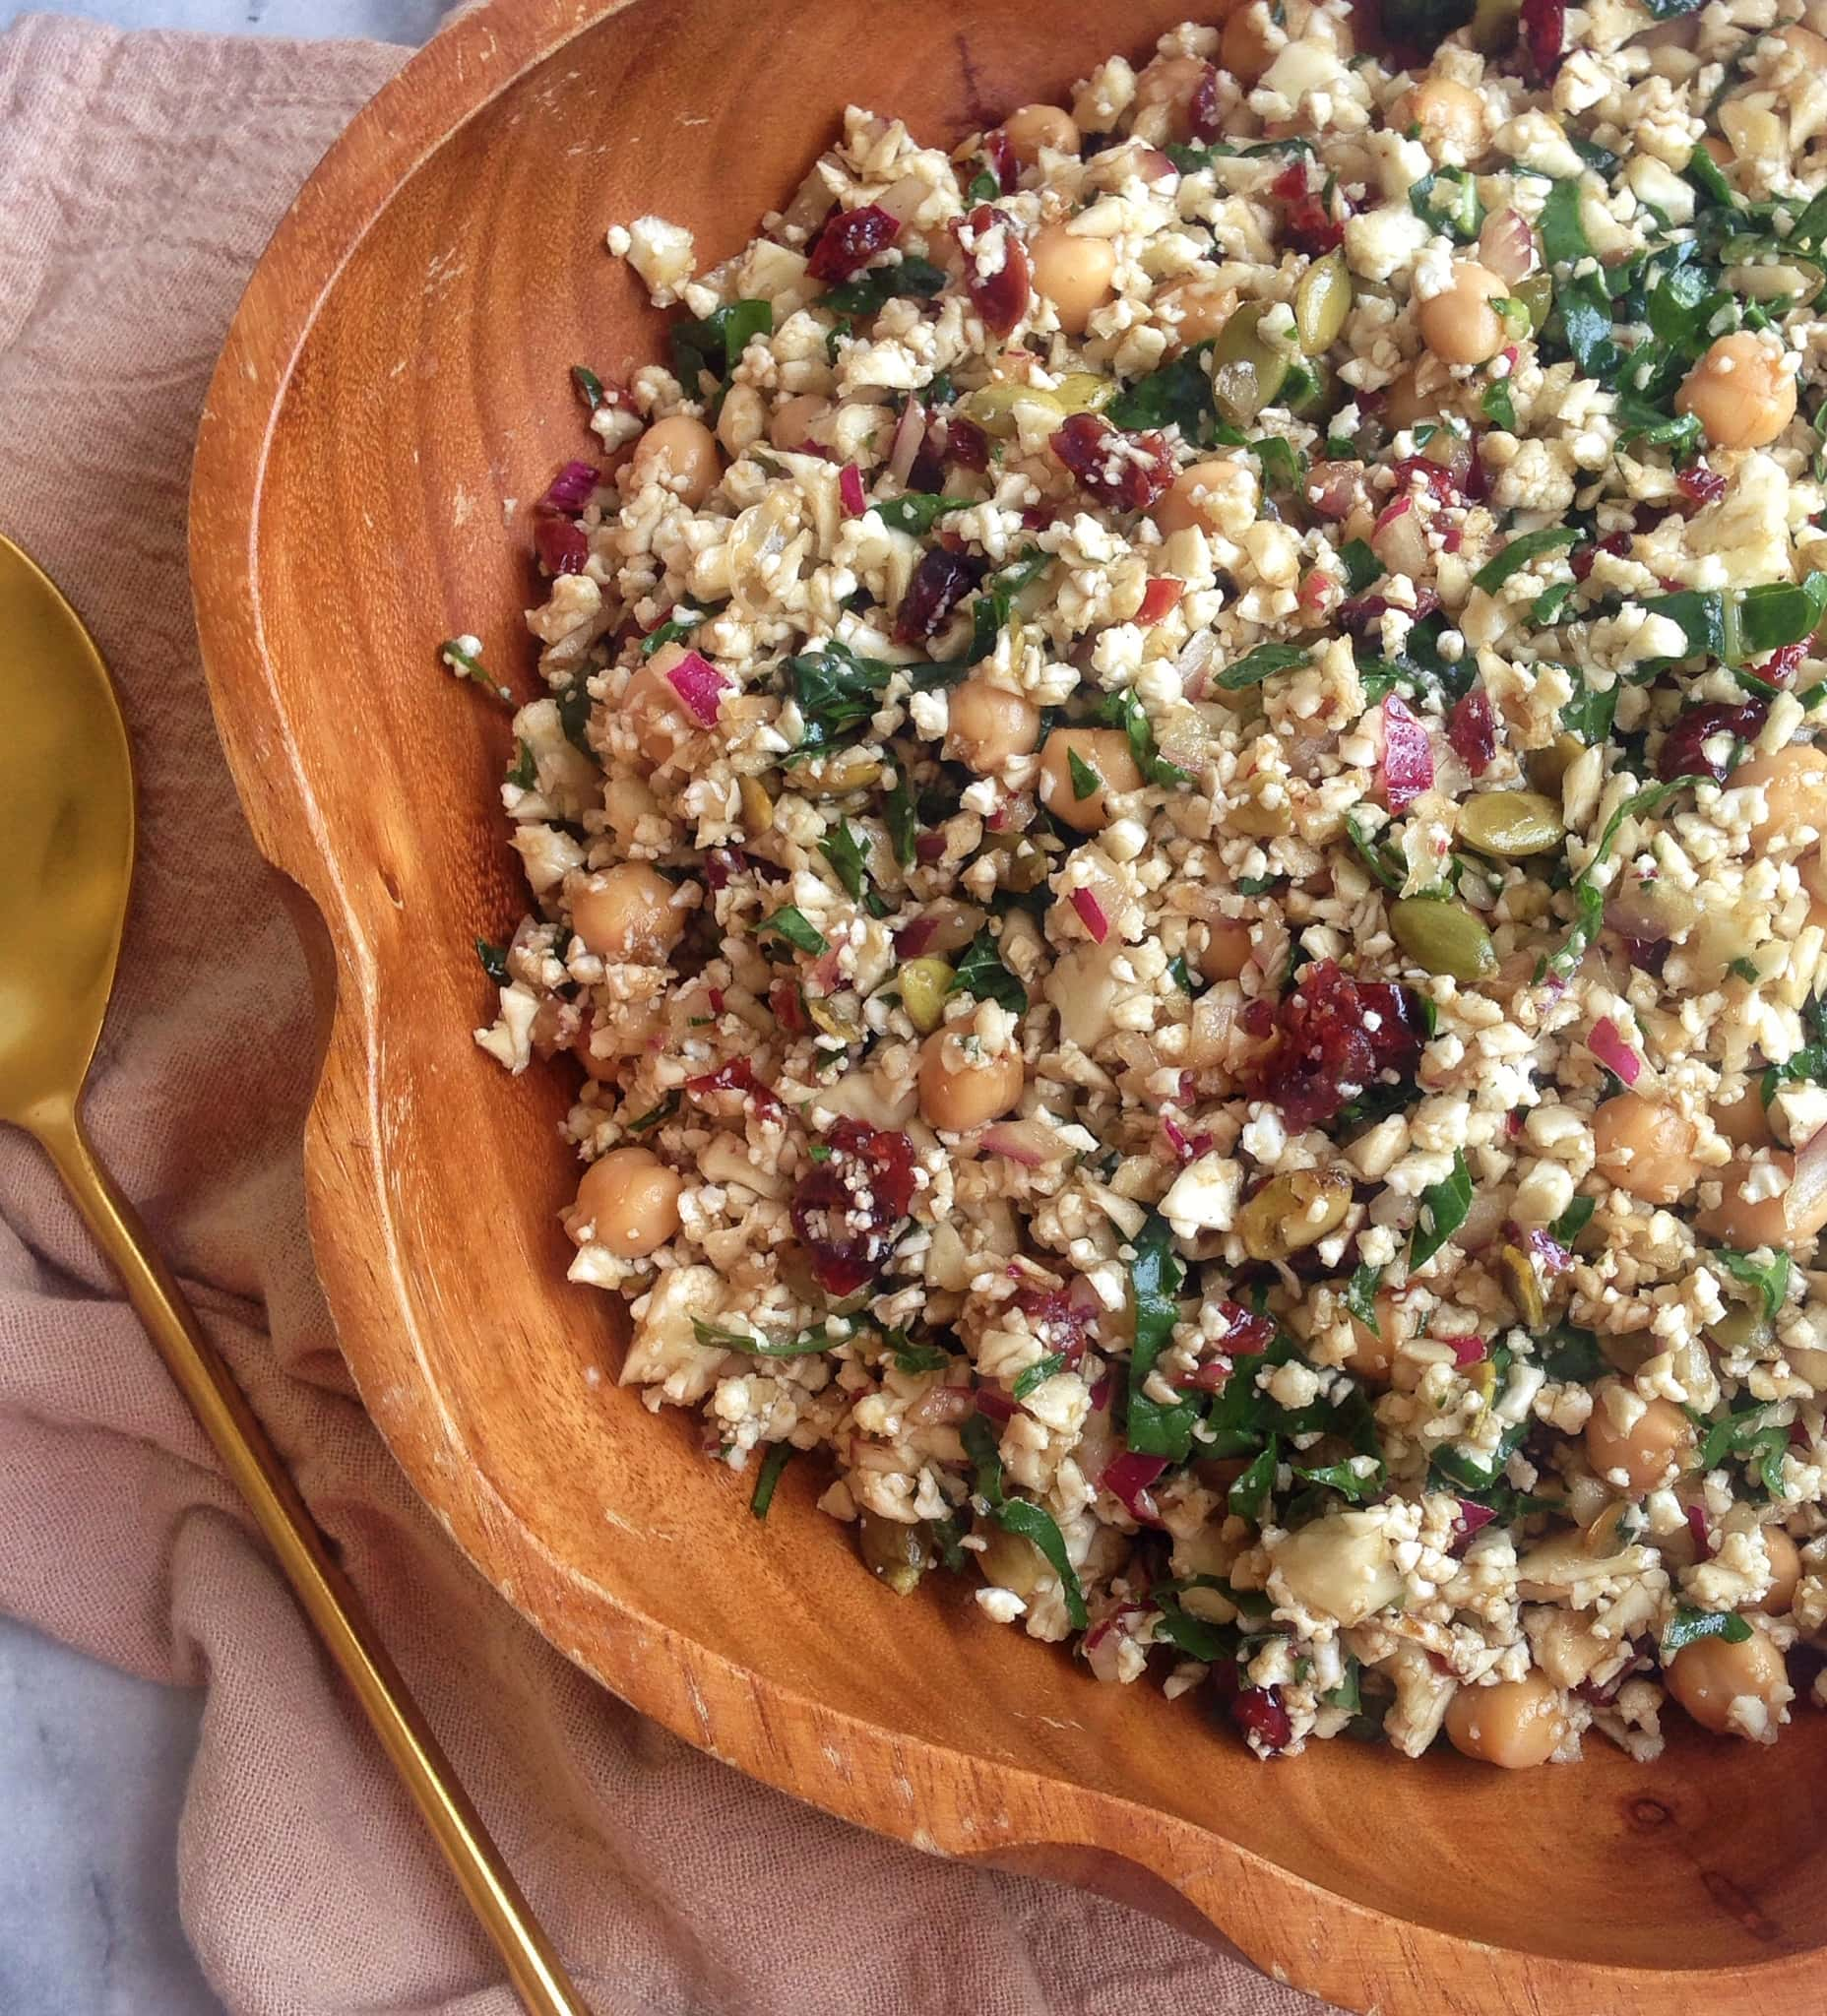 Cauliflower Cranberry Superfood Salad | The Nutrition Adventure